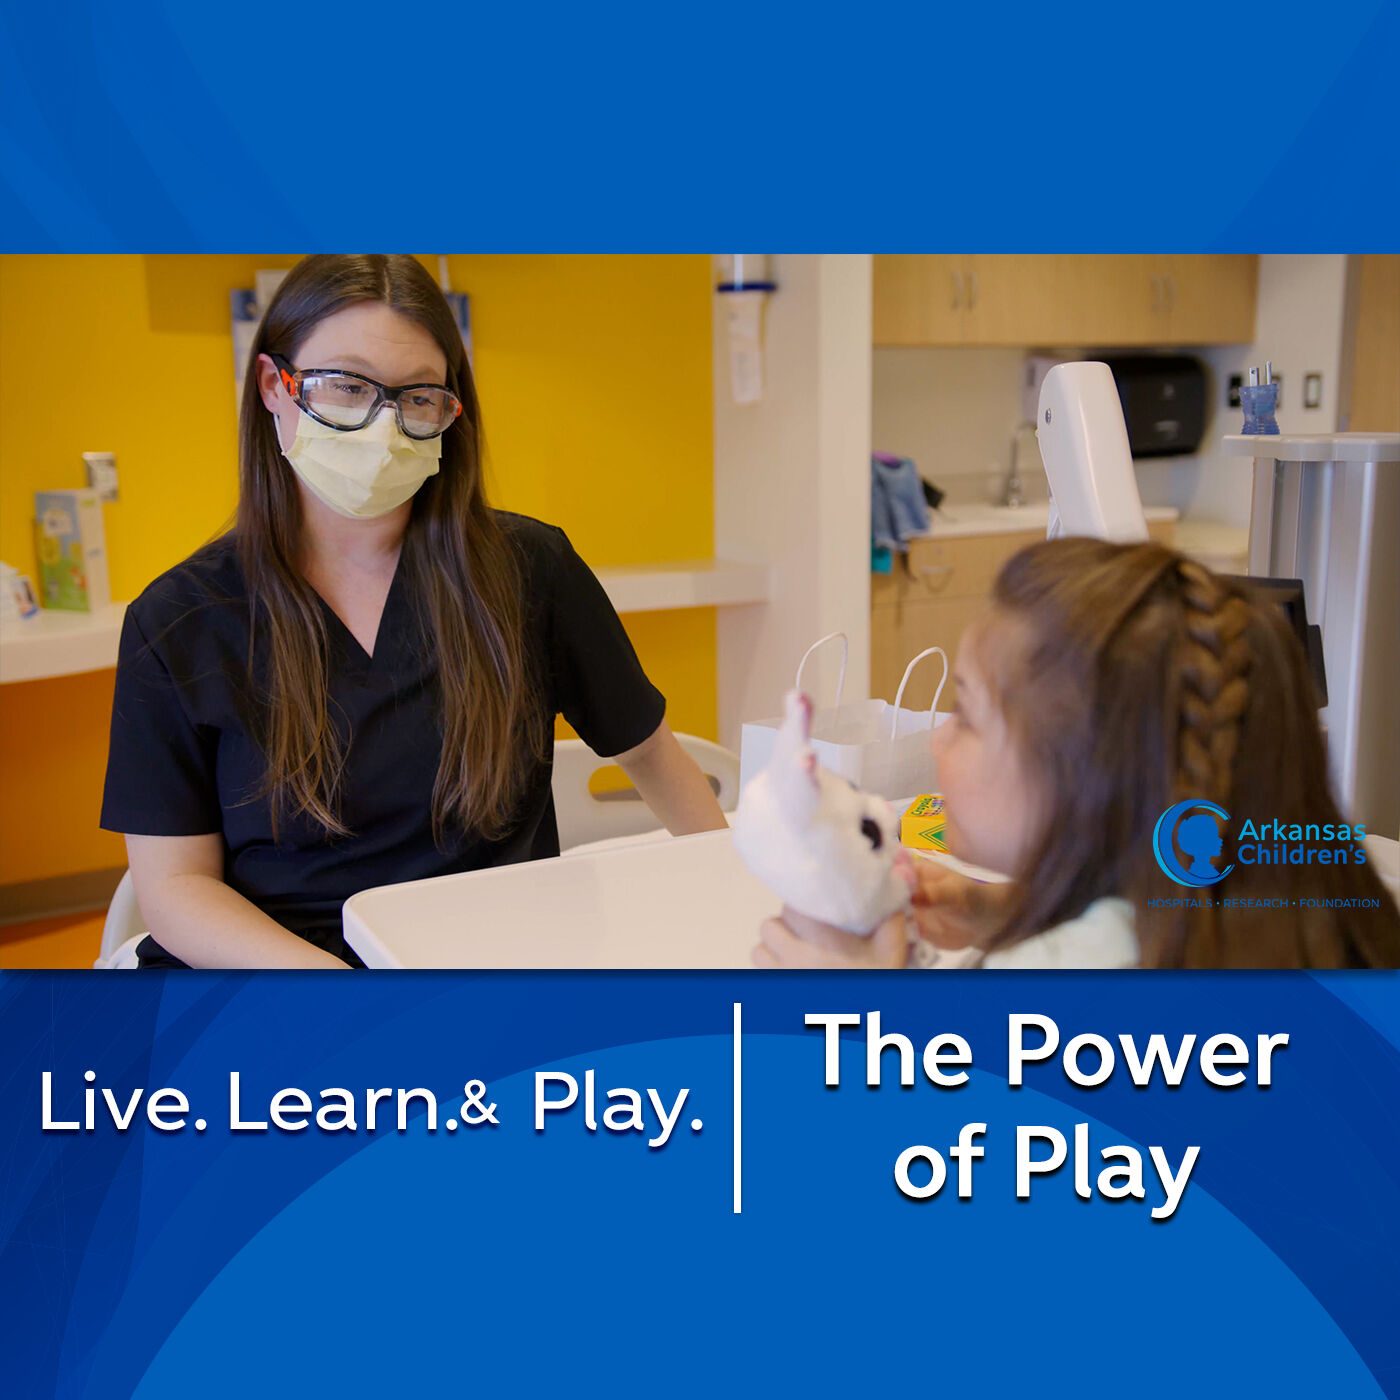 The Power of Play: Child Life at Arkansas Children's